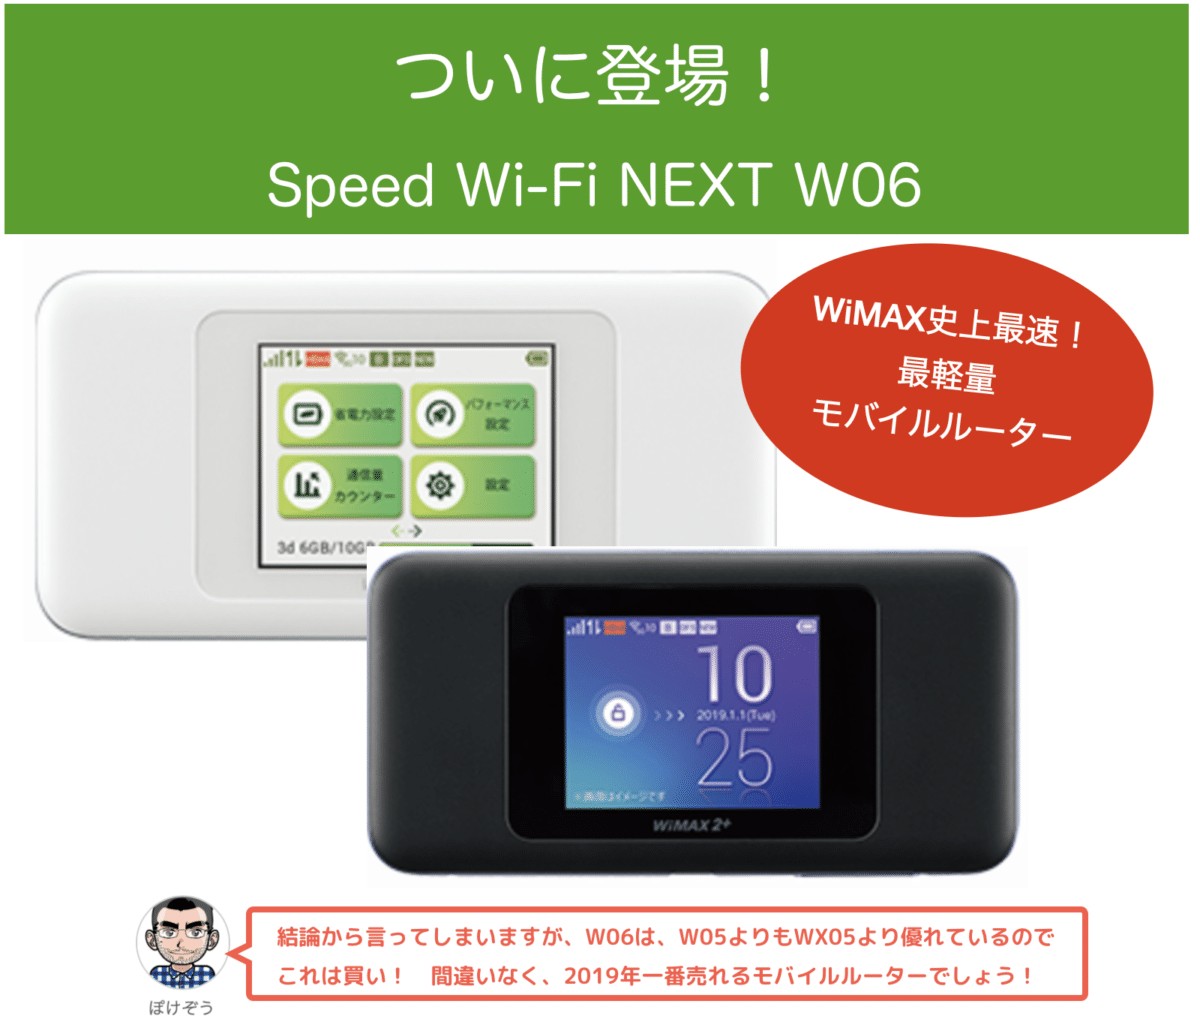 WiMAX史上最速!Speed Wi-Fi NEXT W06レビュー!W05と比較してみた